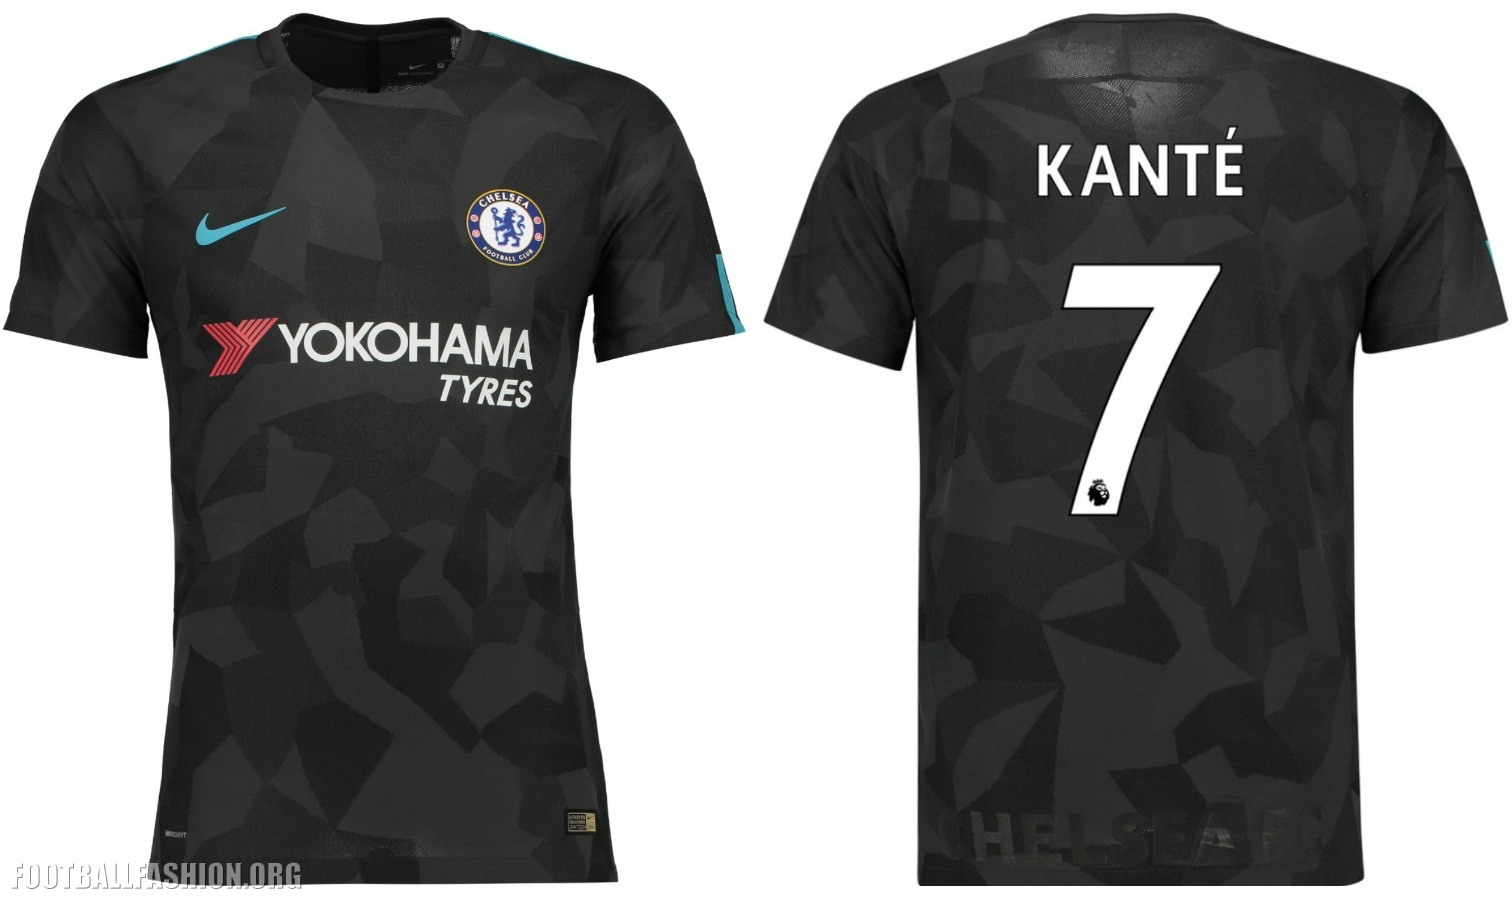 check out e8d84 b663a chelsea fc black jersey